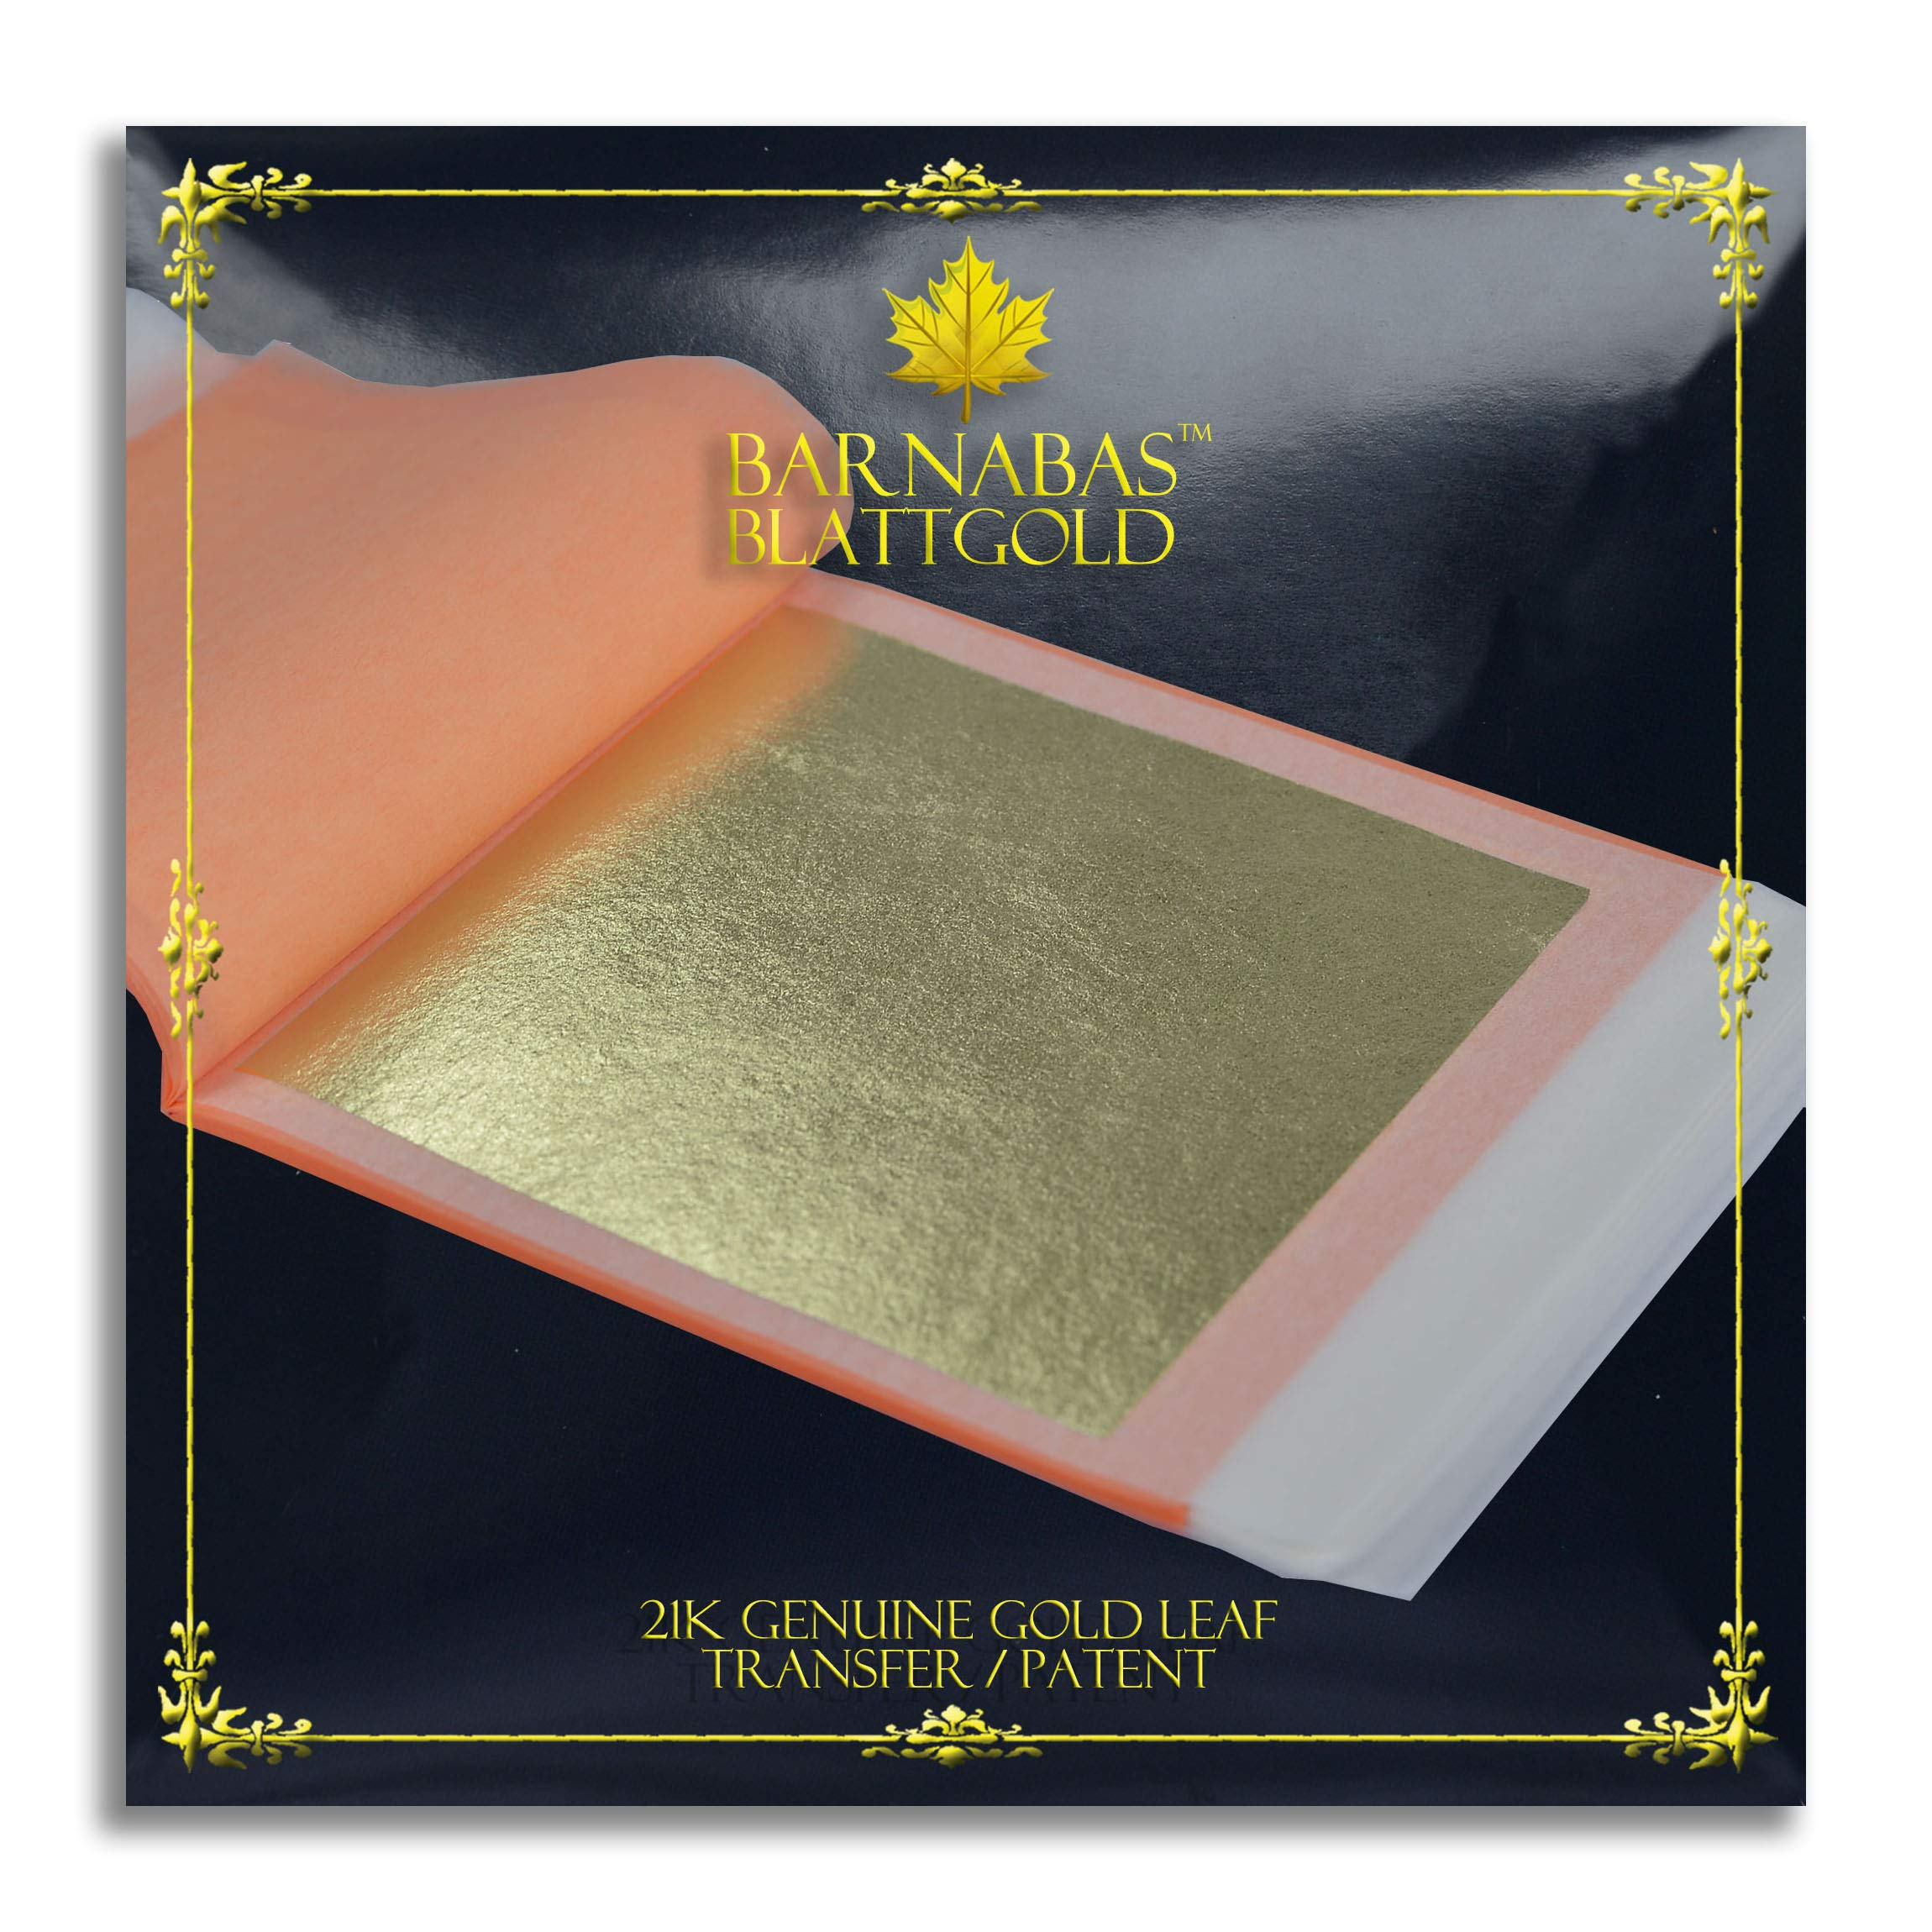 Genuine Gold Leaf Sheets 21k - by Barnabas Blattgold - 3.4 inches - 25 Sheets Booklet - Transfer Patent Leaf